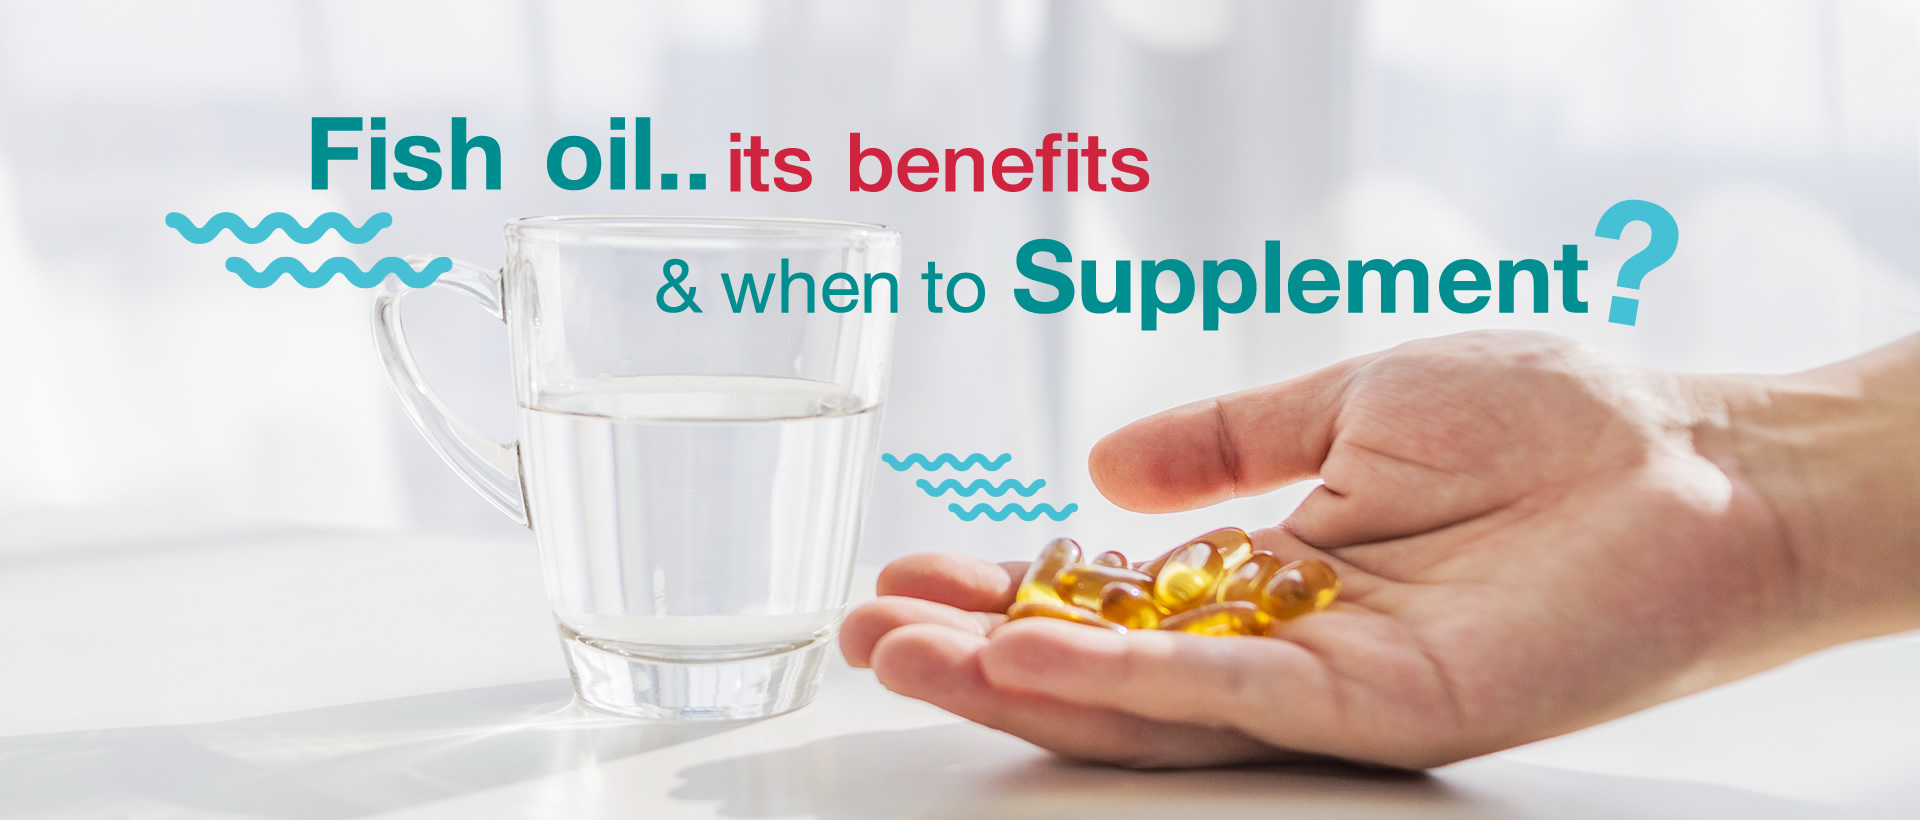 Fish oil, its benefits & when to supplement